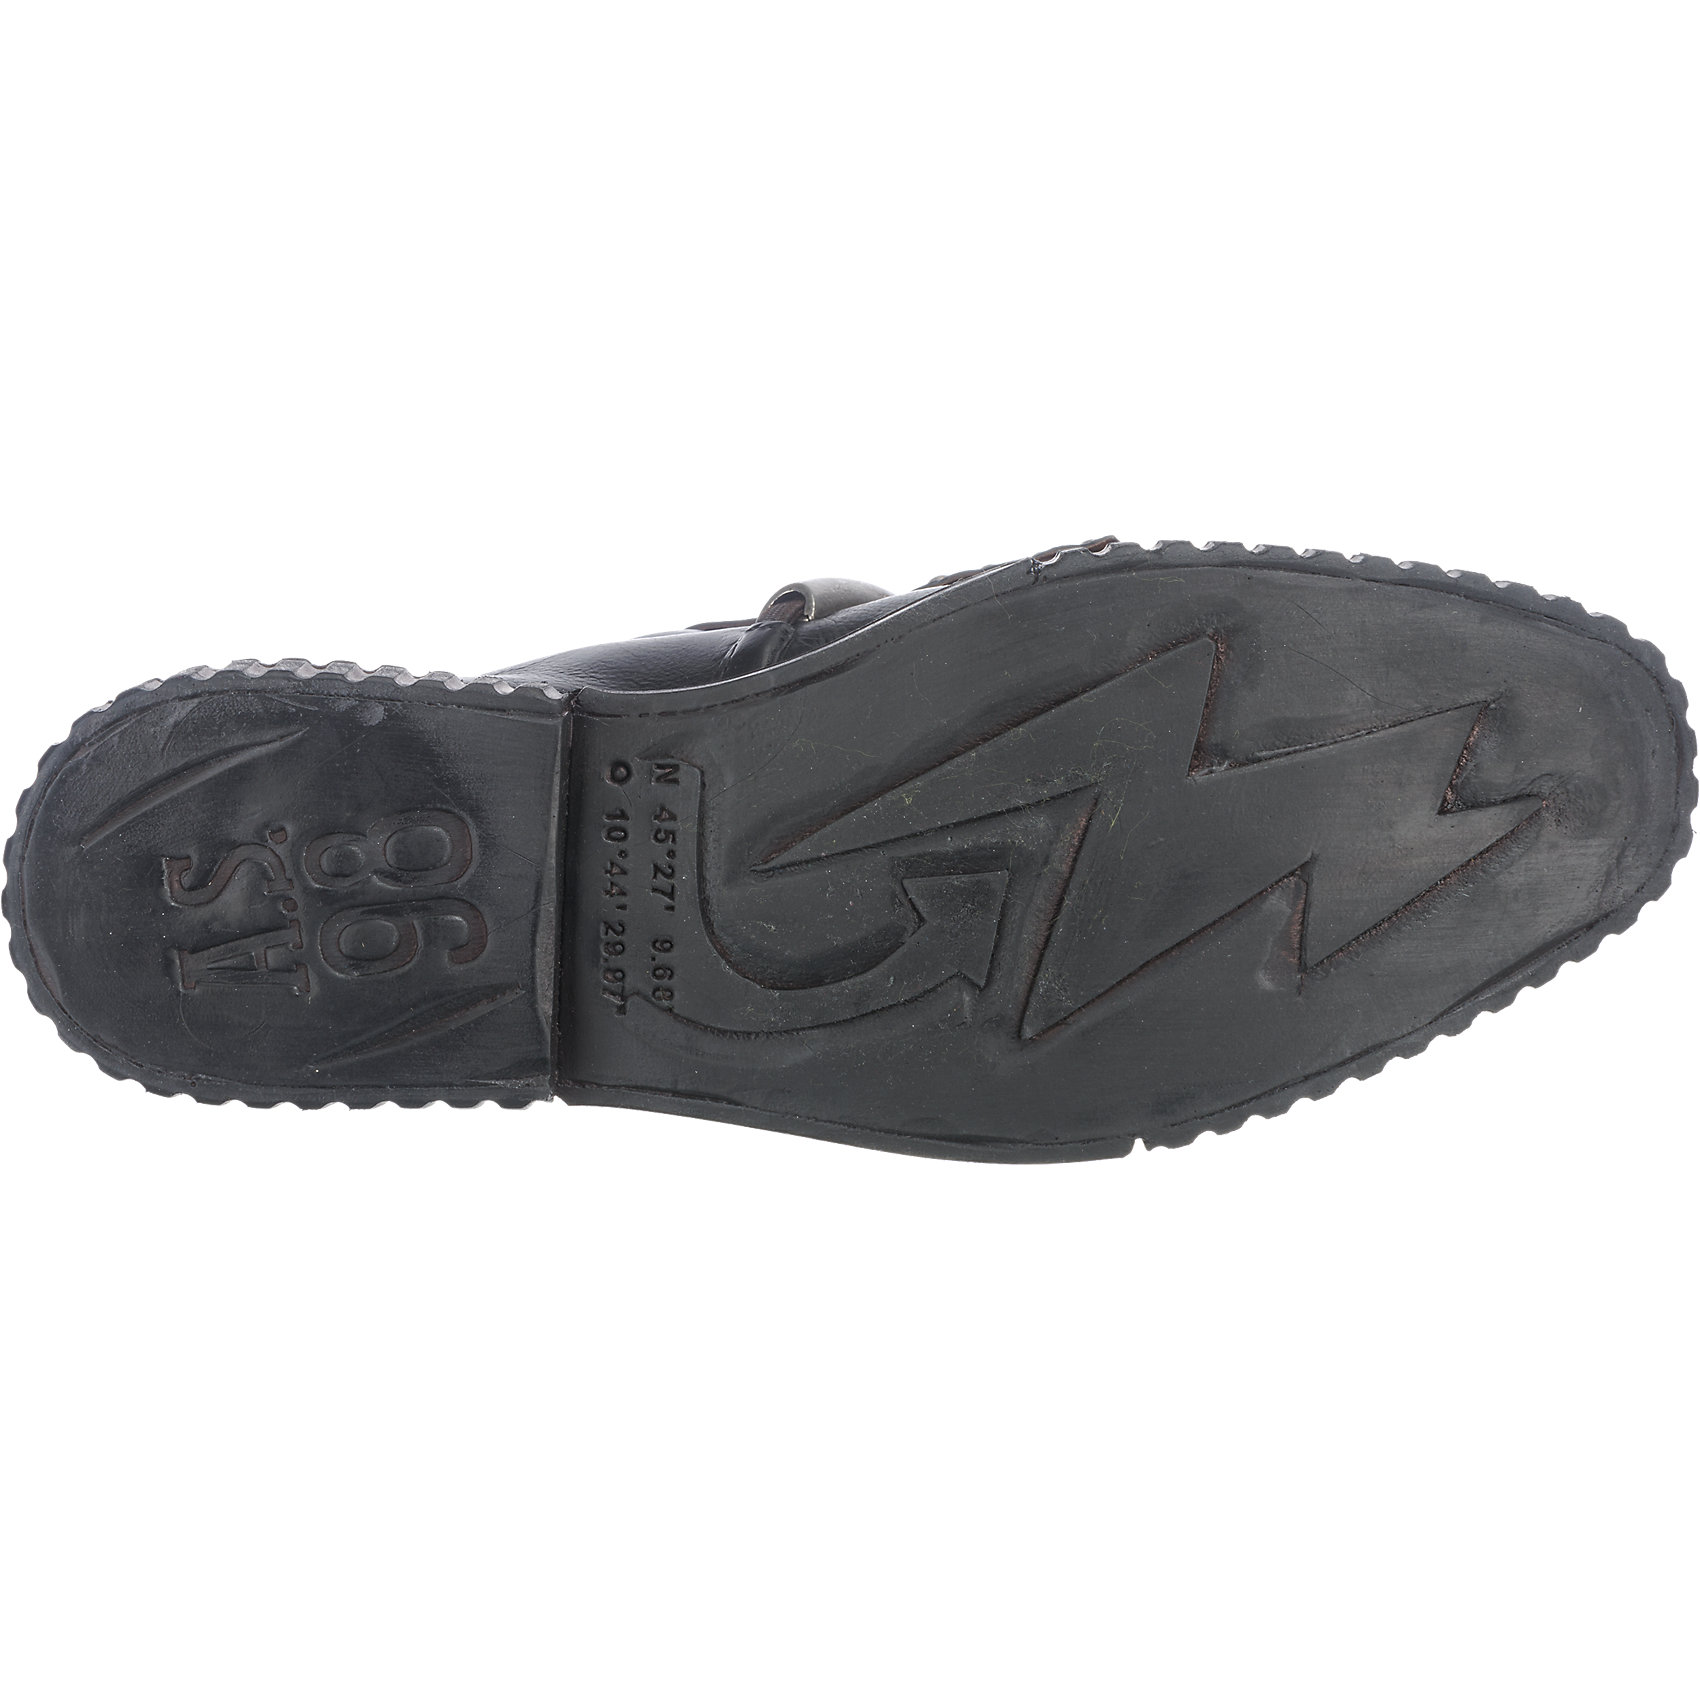 Neu A.S.98 CUT Slipper Slipper CUT schwarz 6734770 314035